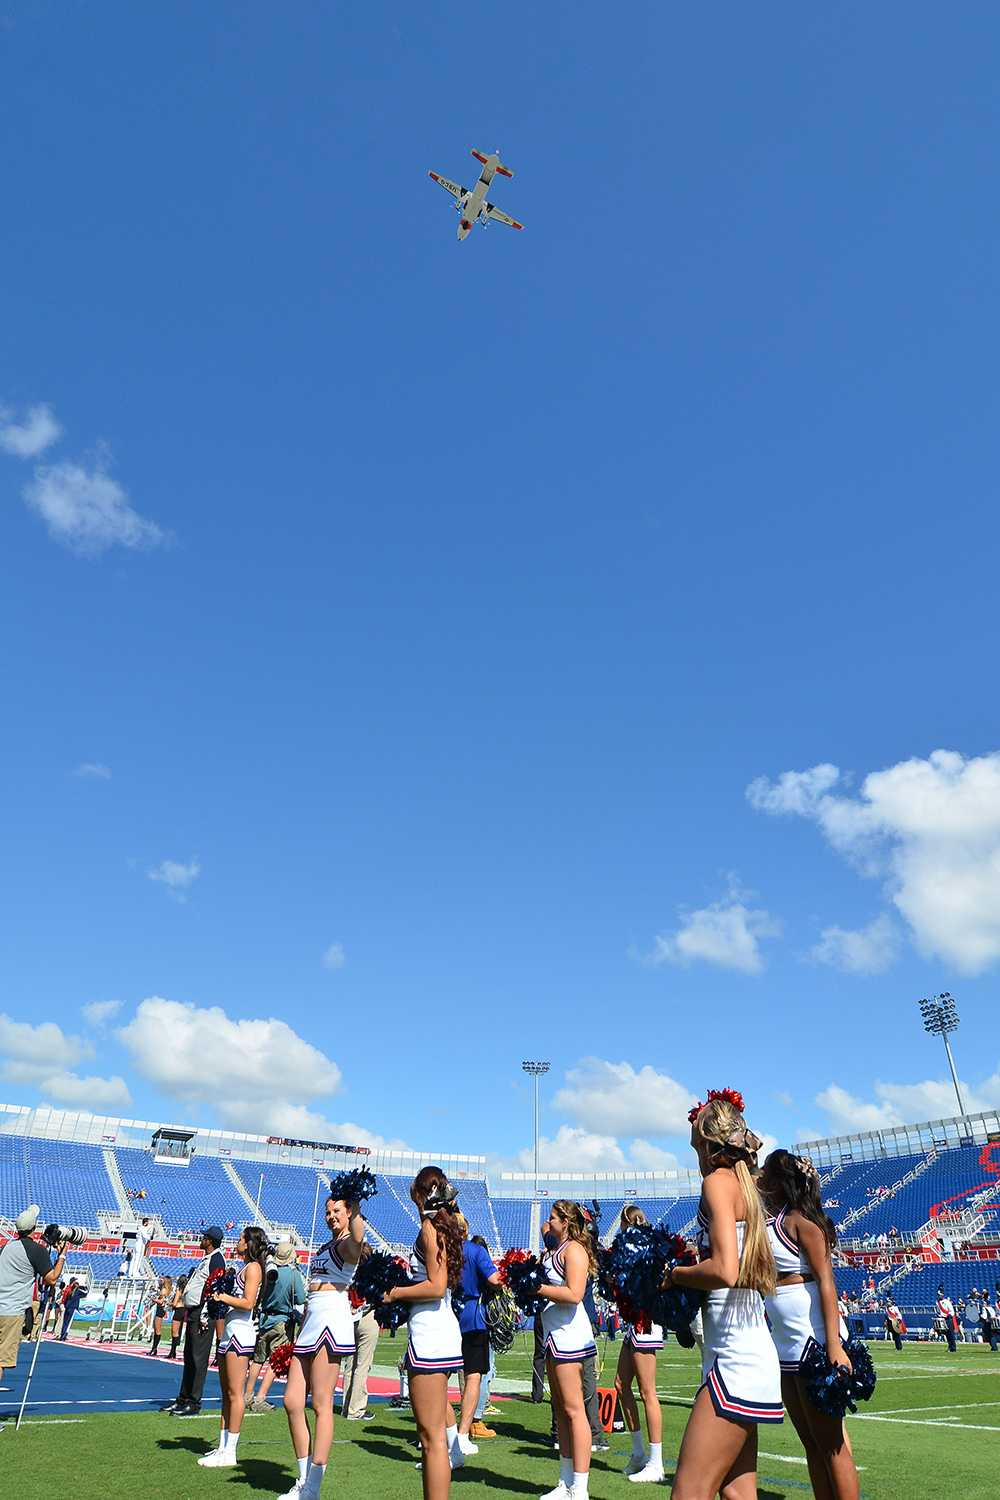 A United States Coast Guard HC-144A Ocean Sentry aircraft flies over FAU stadium before kickoff during Saturday's game. FAU deemed it Military Appreciation Day.